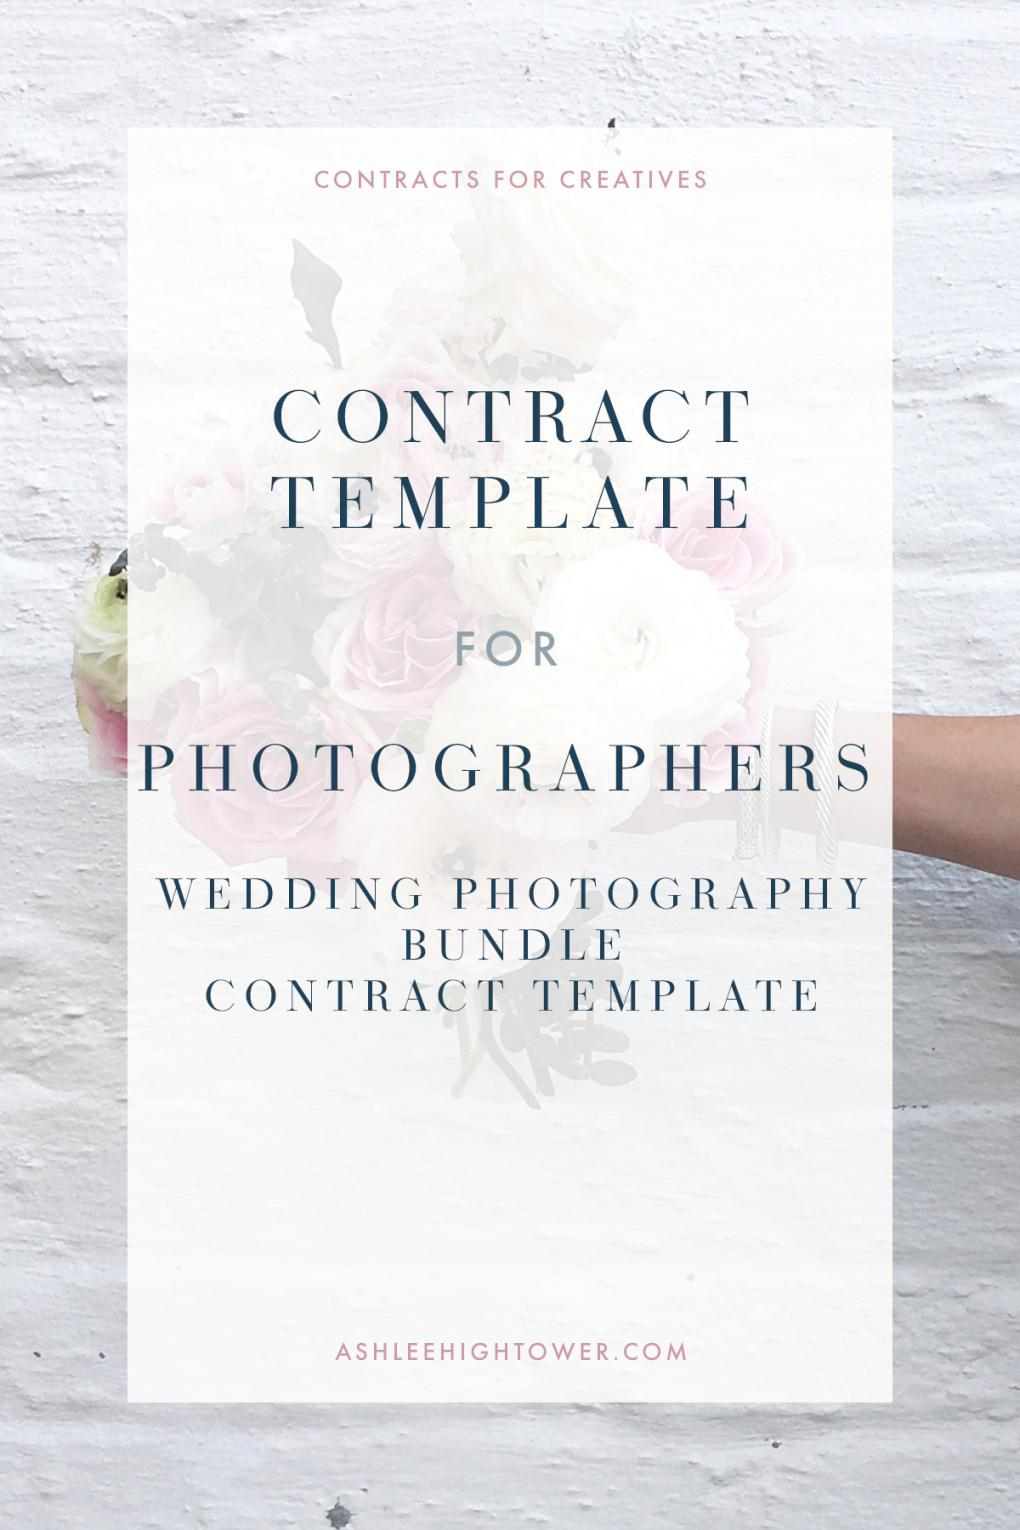 wedding photography bundle  photographer contracts  ashlee hightower engagement photography contract template